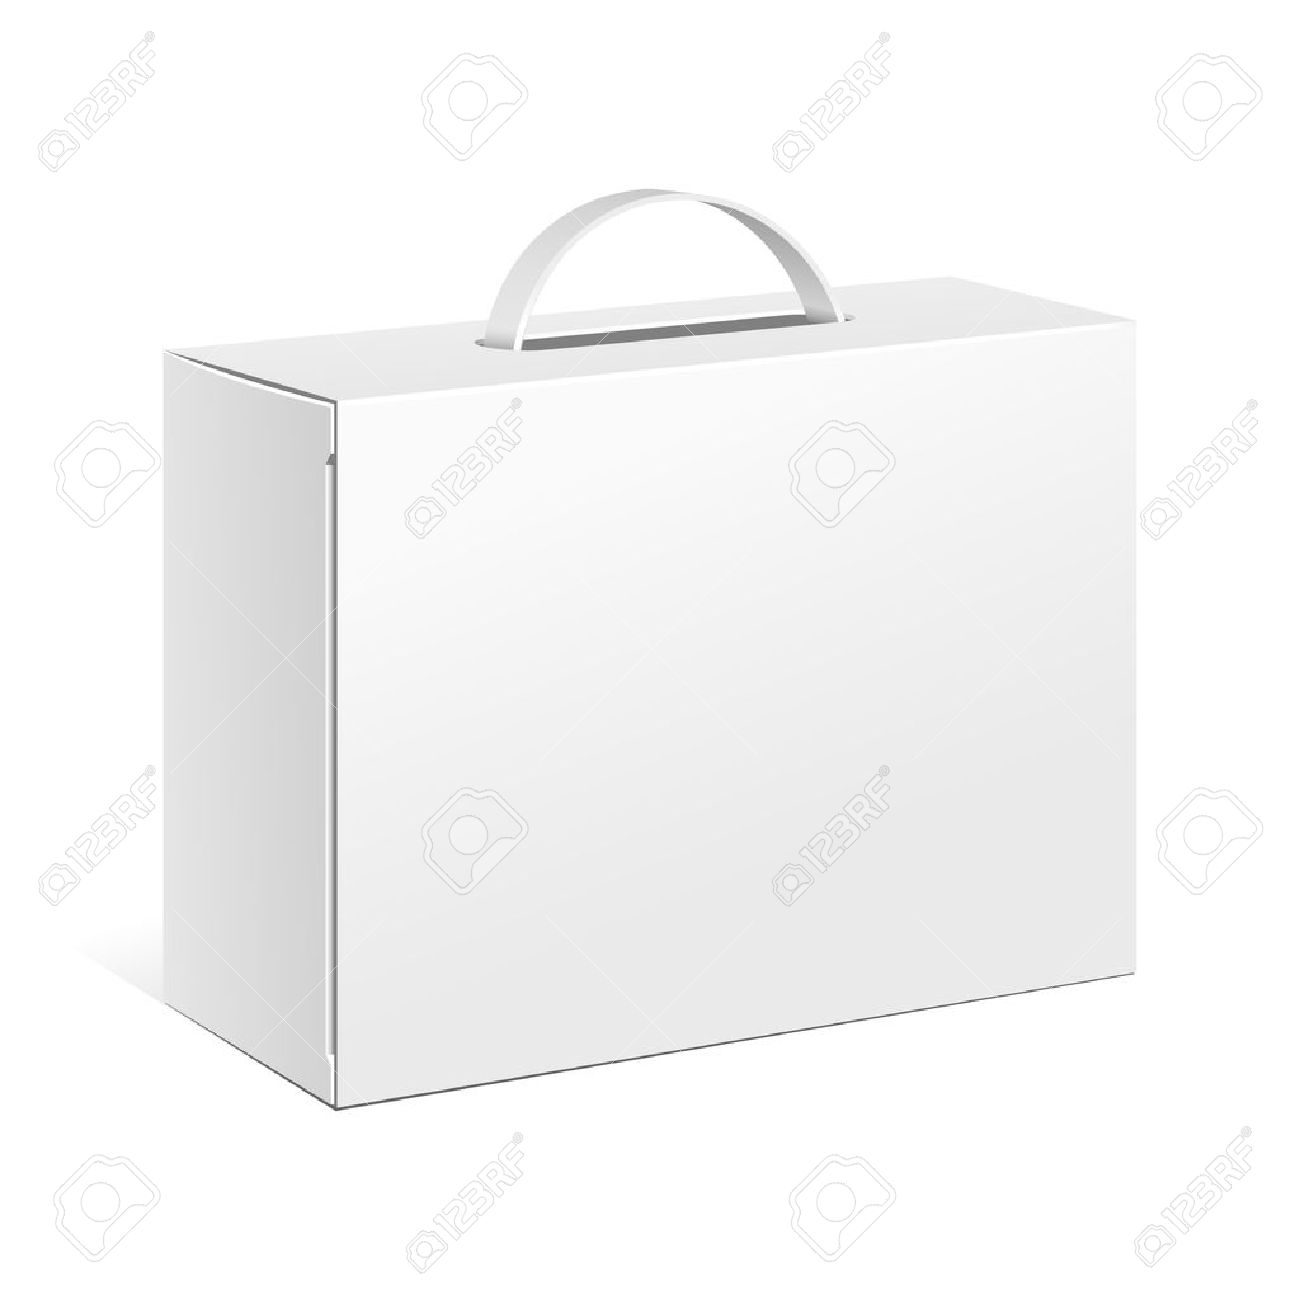 Carton Or Plastic White Blank Package Box With Handle. Briefcase, Case, Folder, Portfolio Case. Illustration Isolated On White Background. Ready For Your Design. Product Packing Vector EPS10 - 36931333